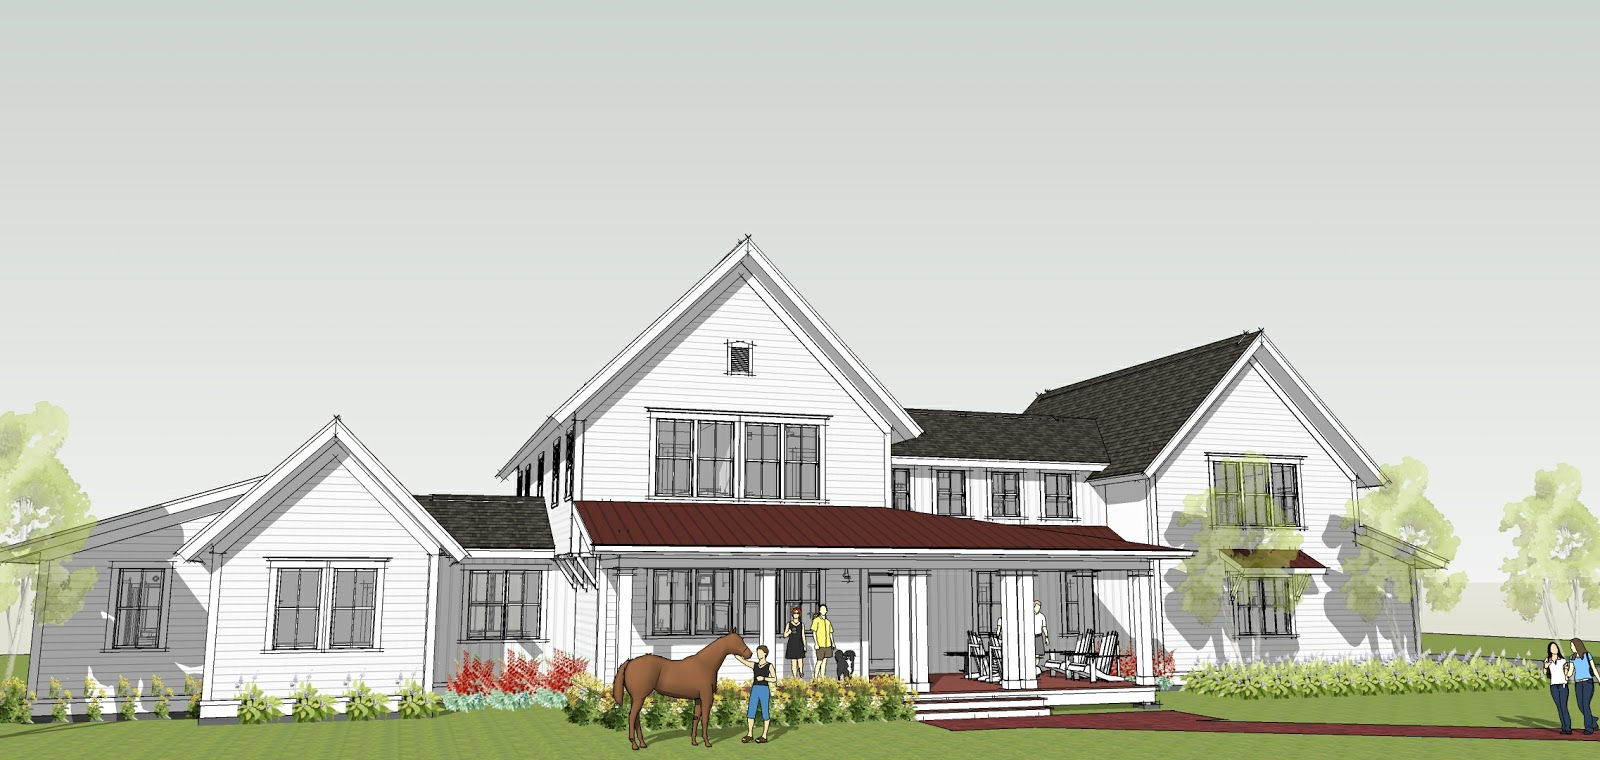 Simply elegant home designs blog modern farmhouse by ron for Elegant home design